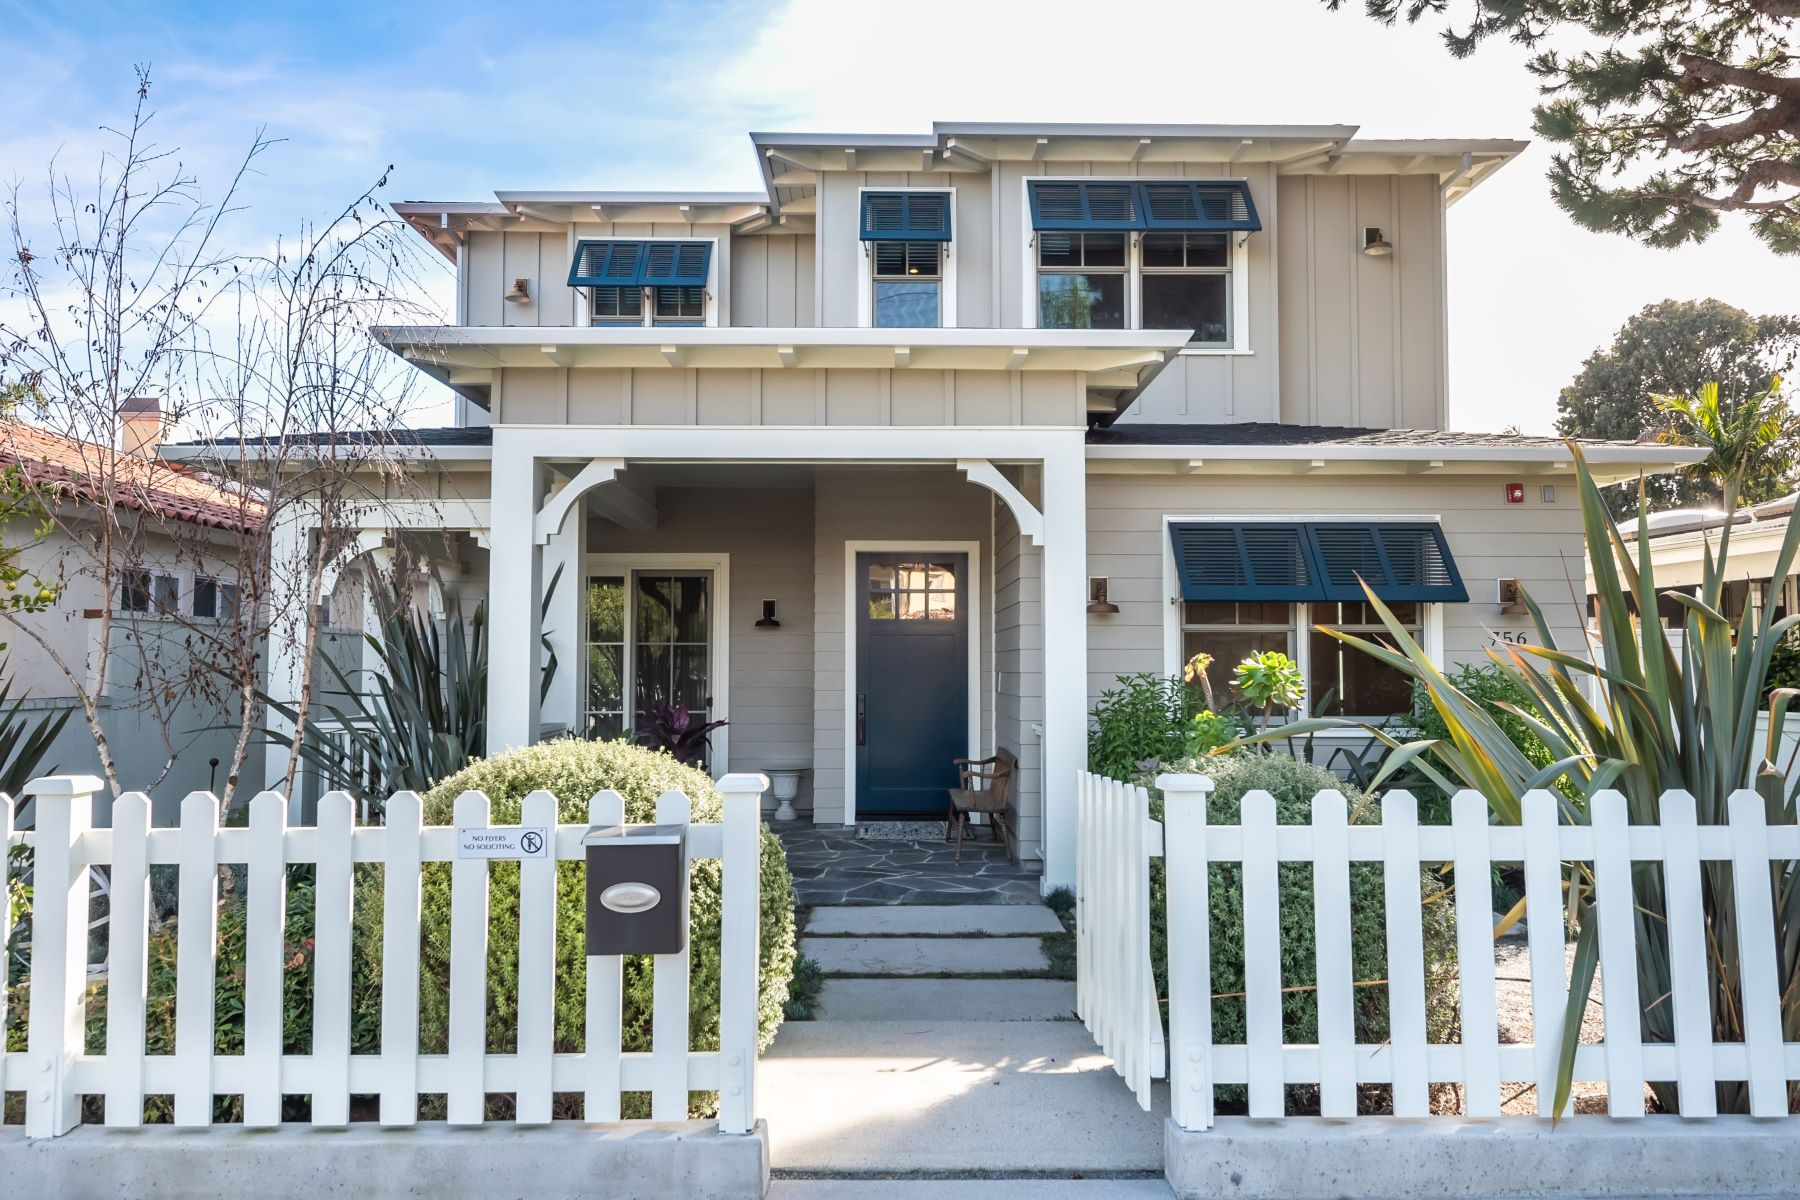 Single Family Homes for Sale at 756 36th Street, Manhattan Beach, CA 90266 756 36th Street Manhattan Beach, California 90266 United States